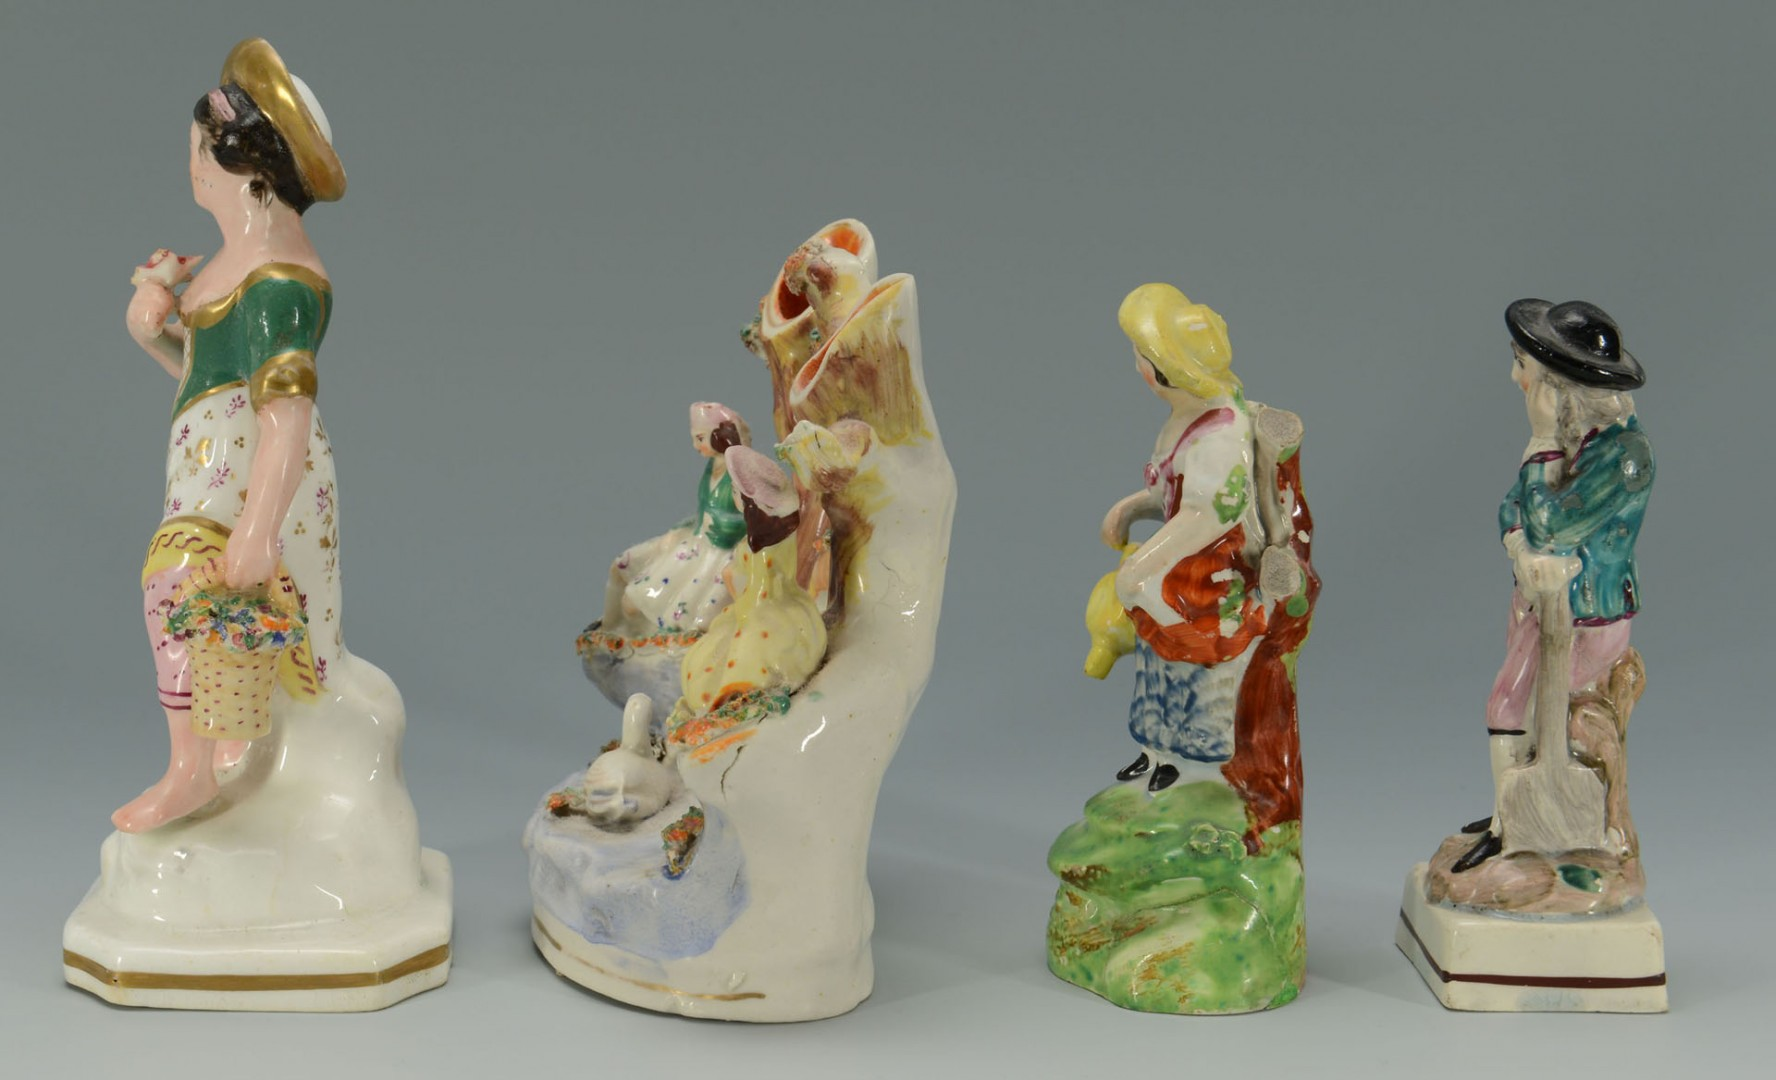 Grouping of 4 Staffordshire Figures